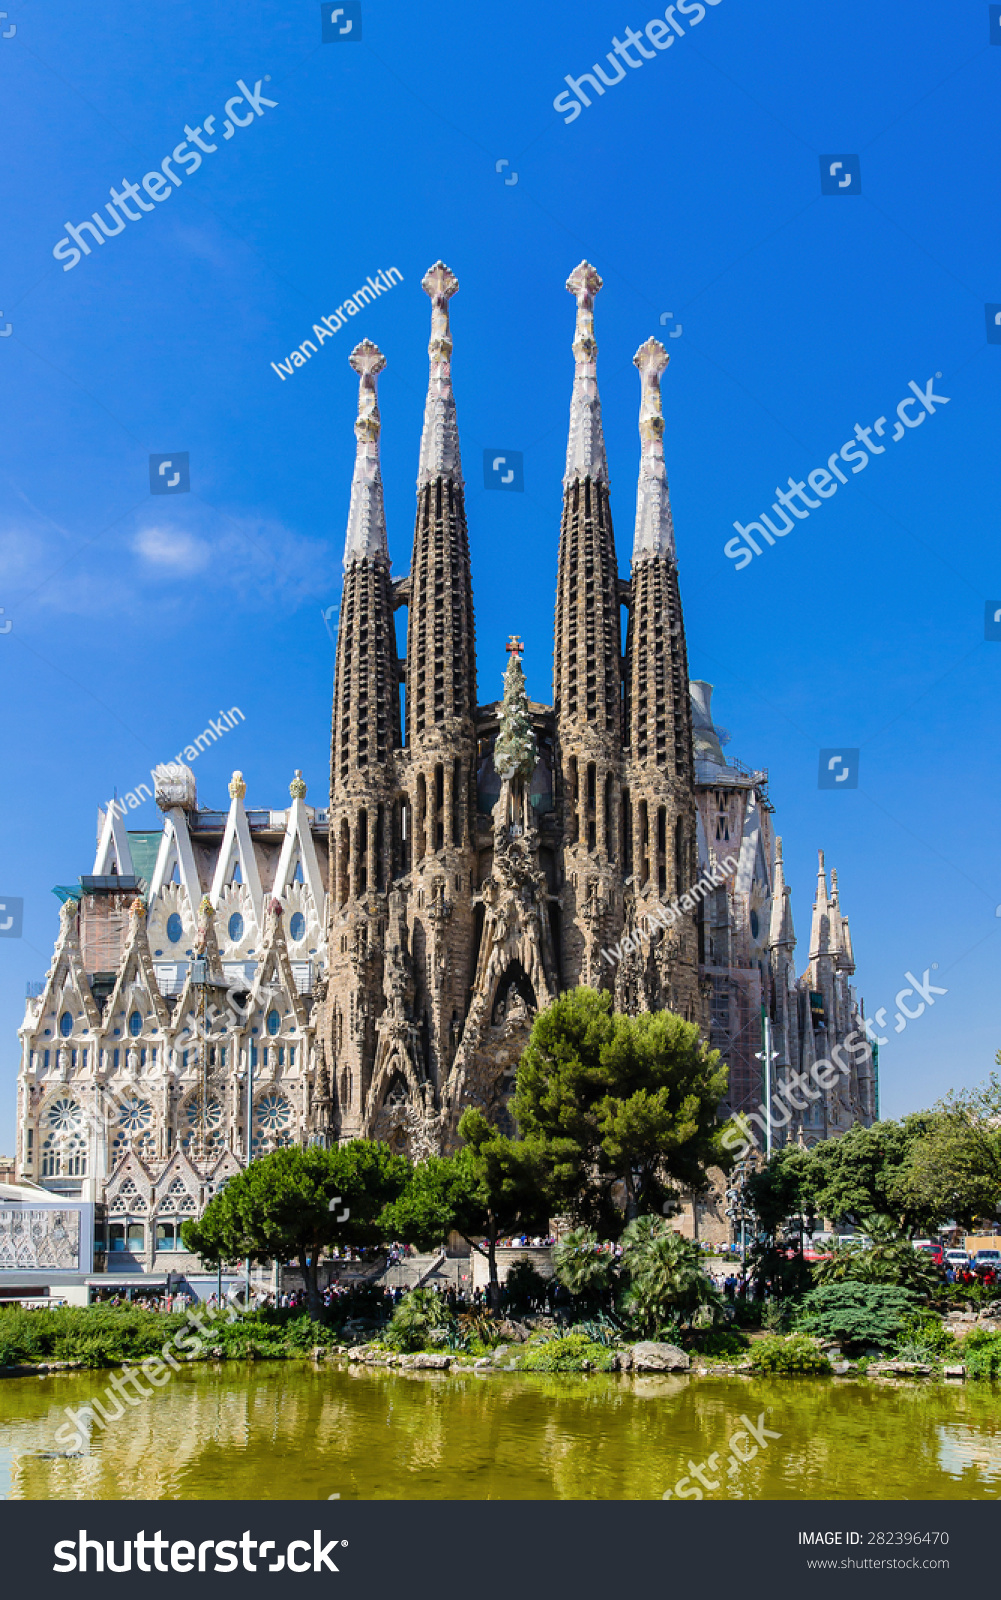 analysis of the sagrada familia barcelona Find out the top 10 facts about the stunning sagrada familia cathedral in barcelona.